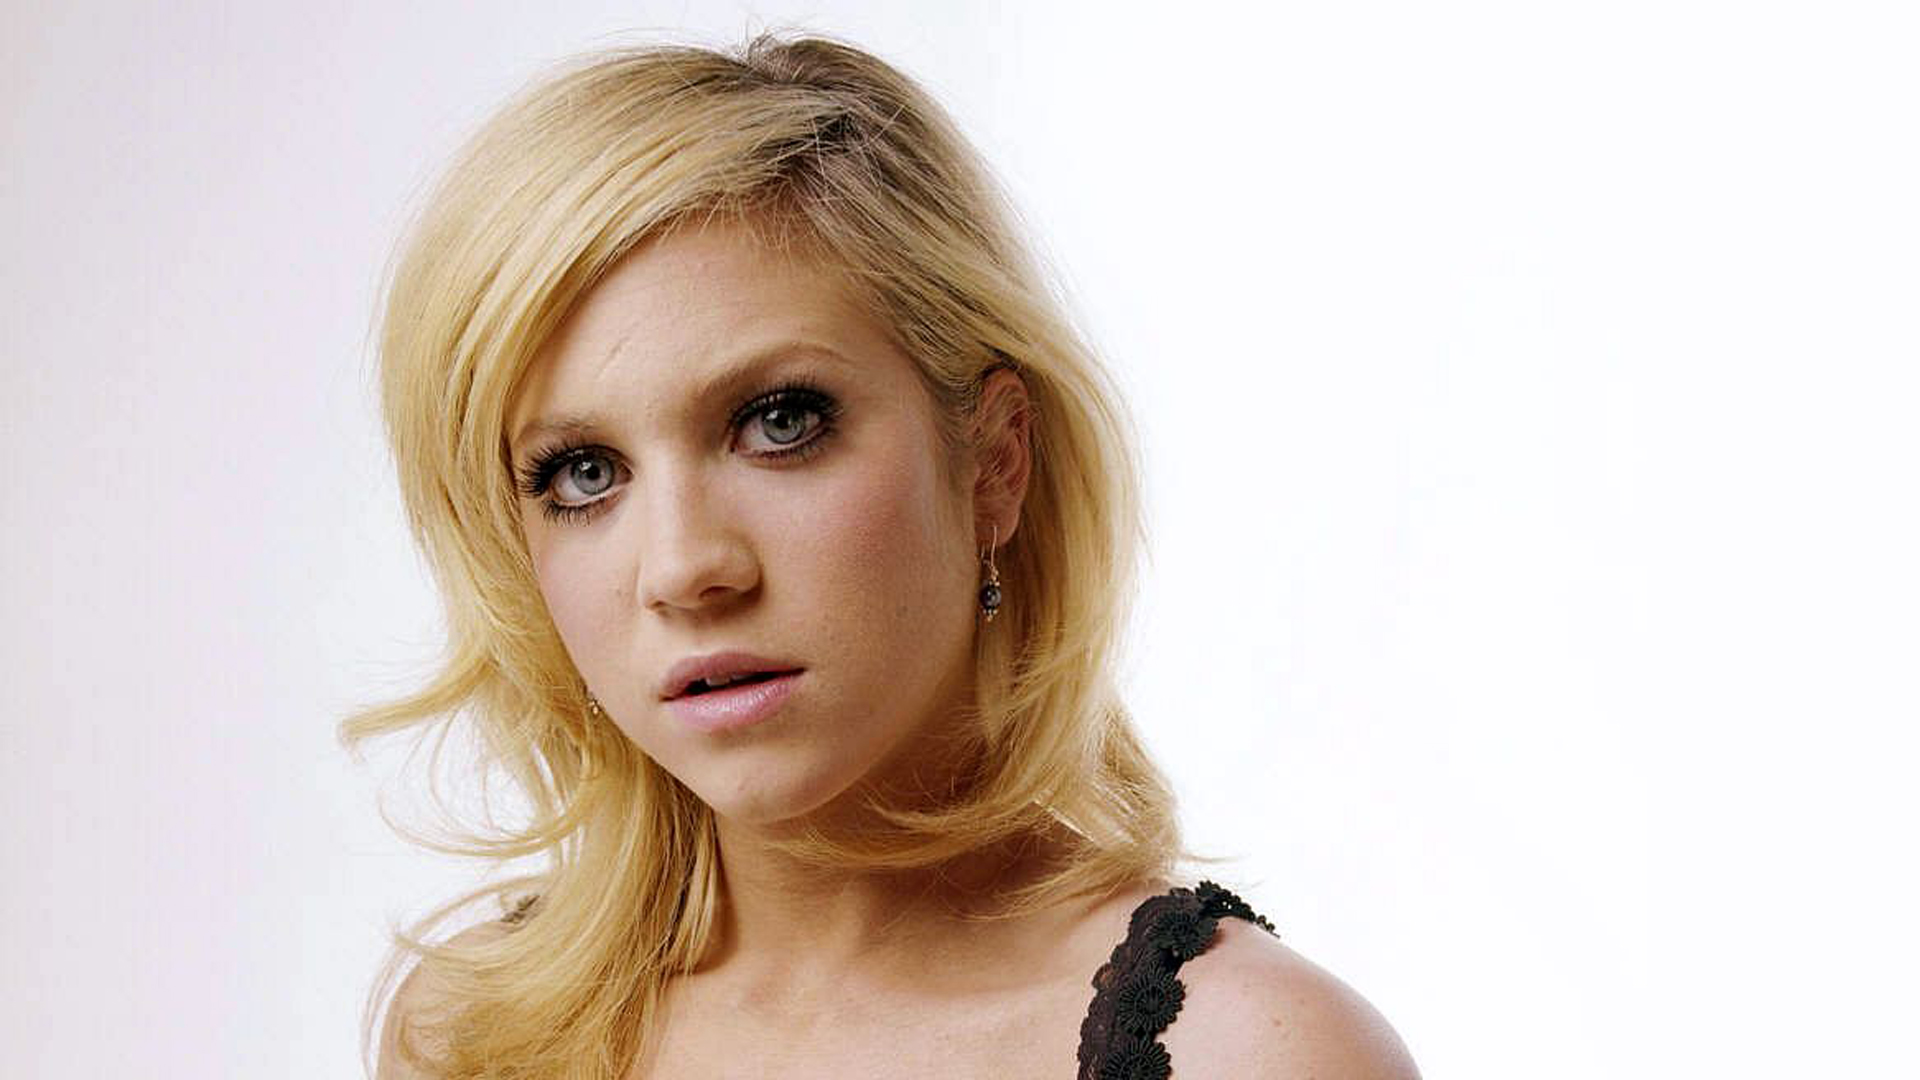 1920x1080 - Brittany Snow Wallpapers 27